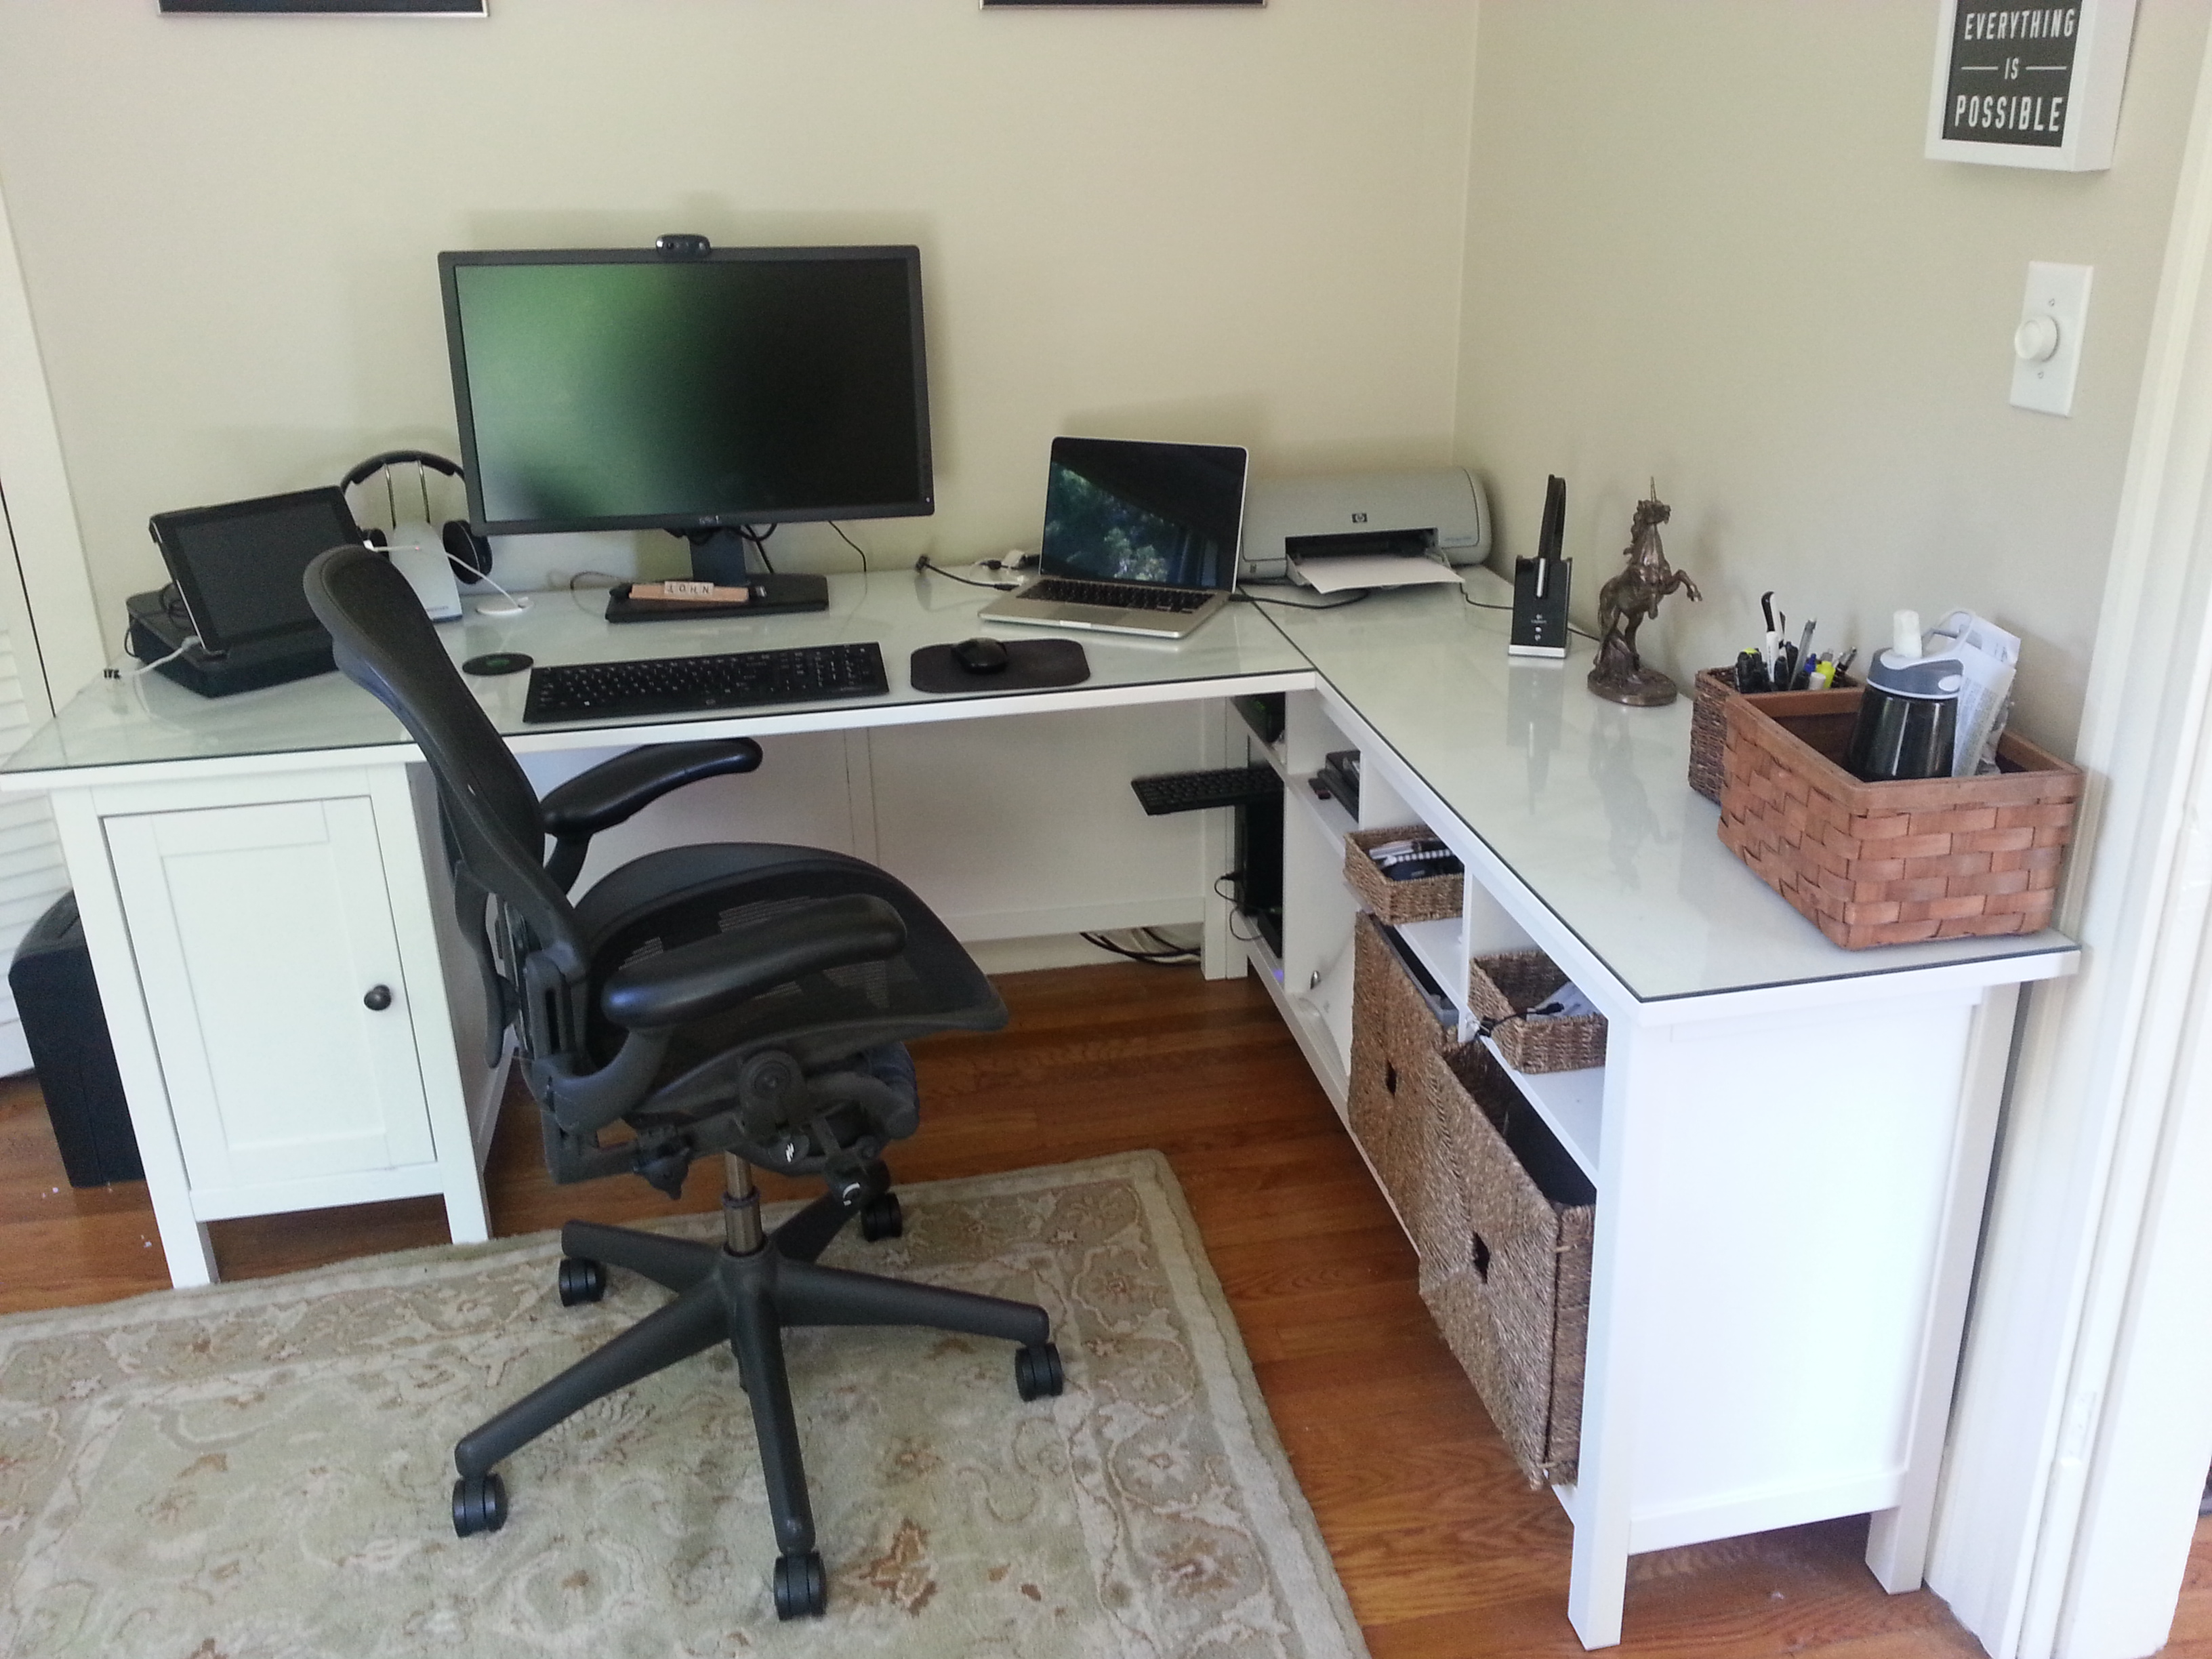 ikea office table. Hemnes Desk Minus One Pedestal, Plus Sofa Table, Glass Top. Ikea Office Table I